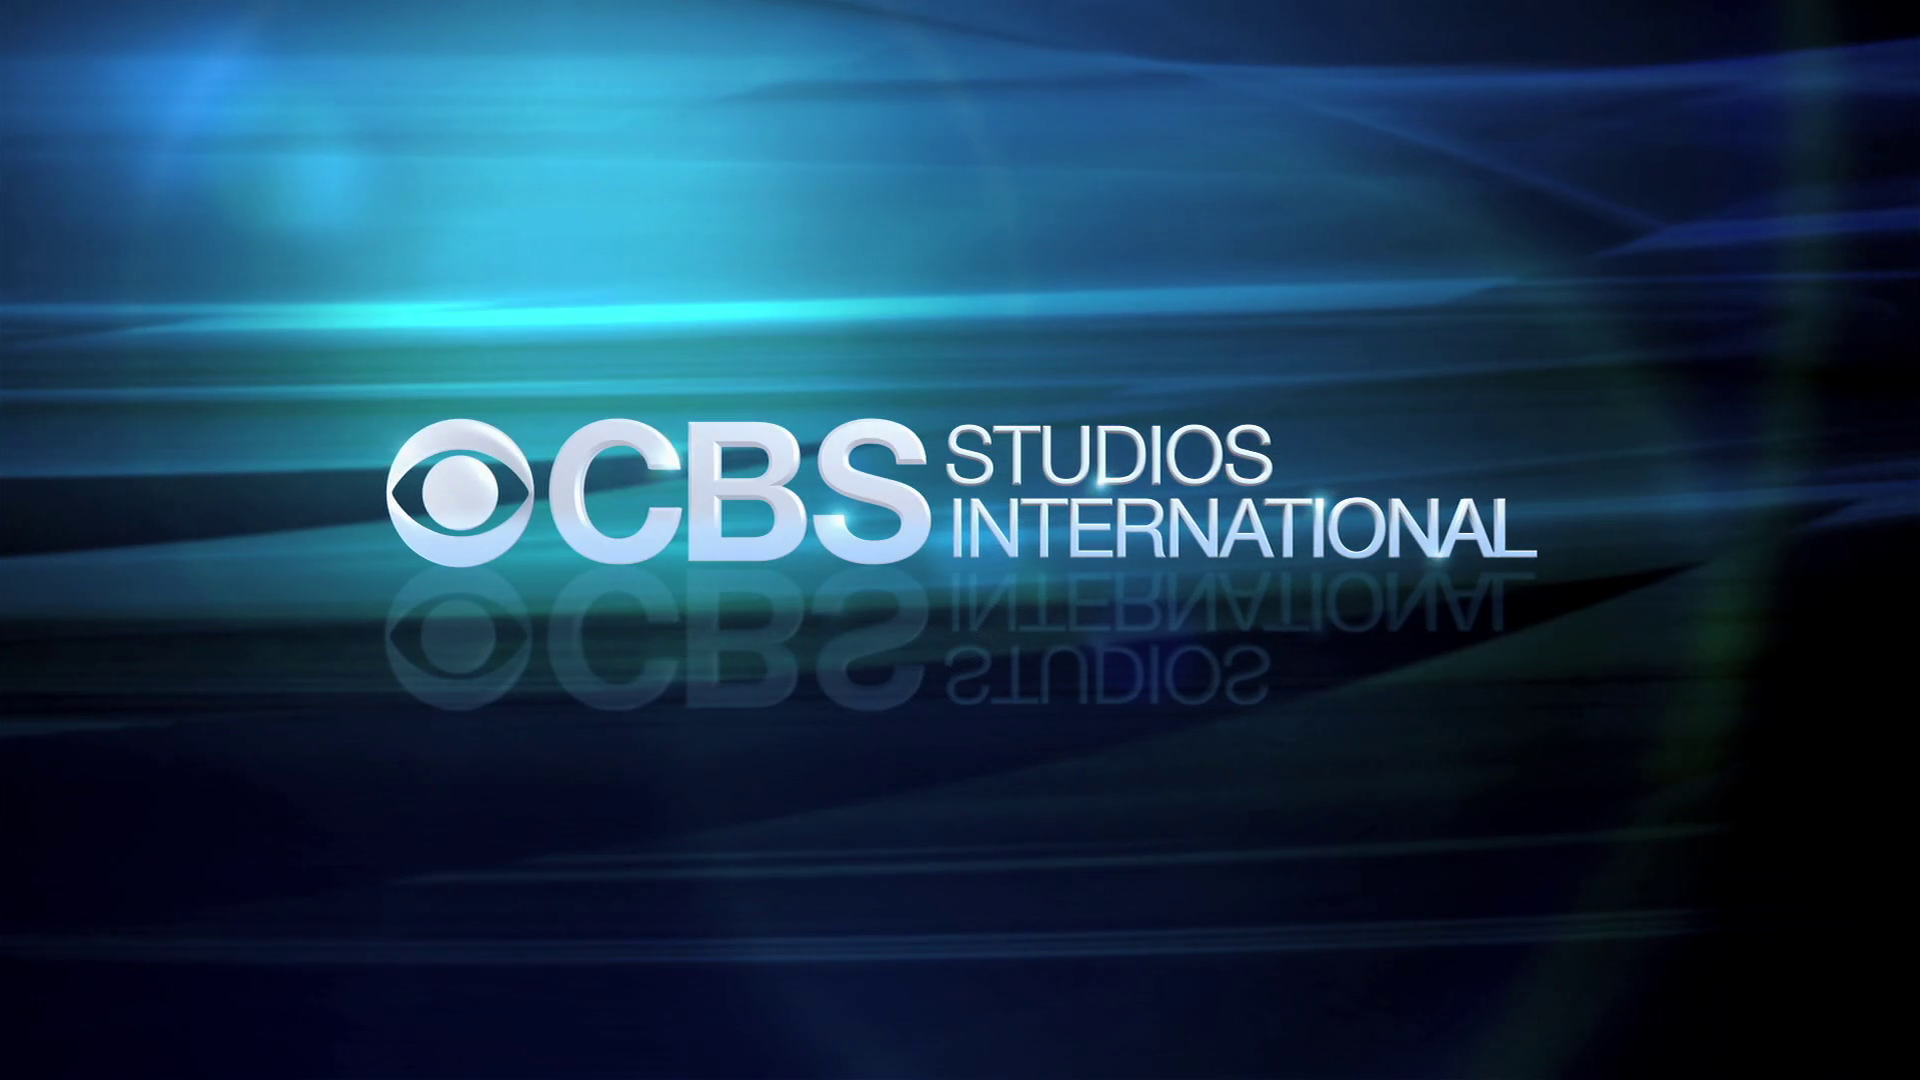 CBS Studios International/Other